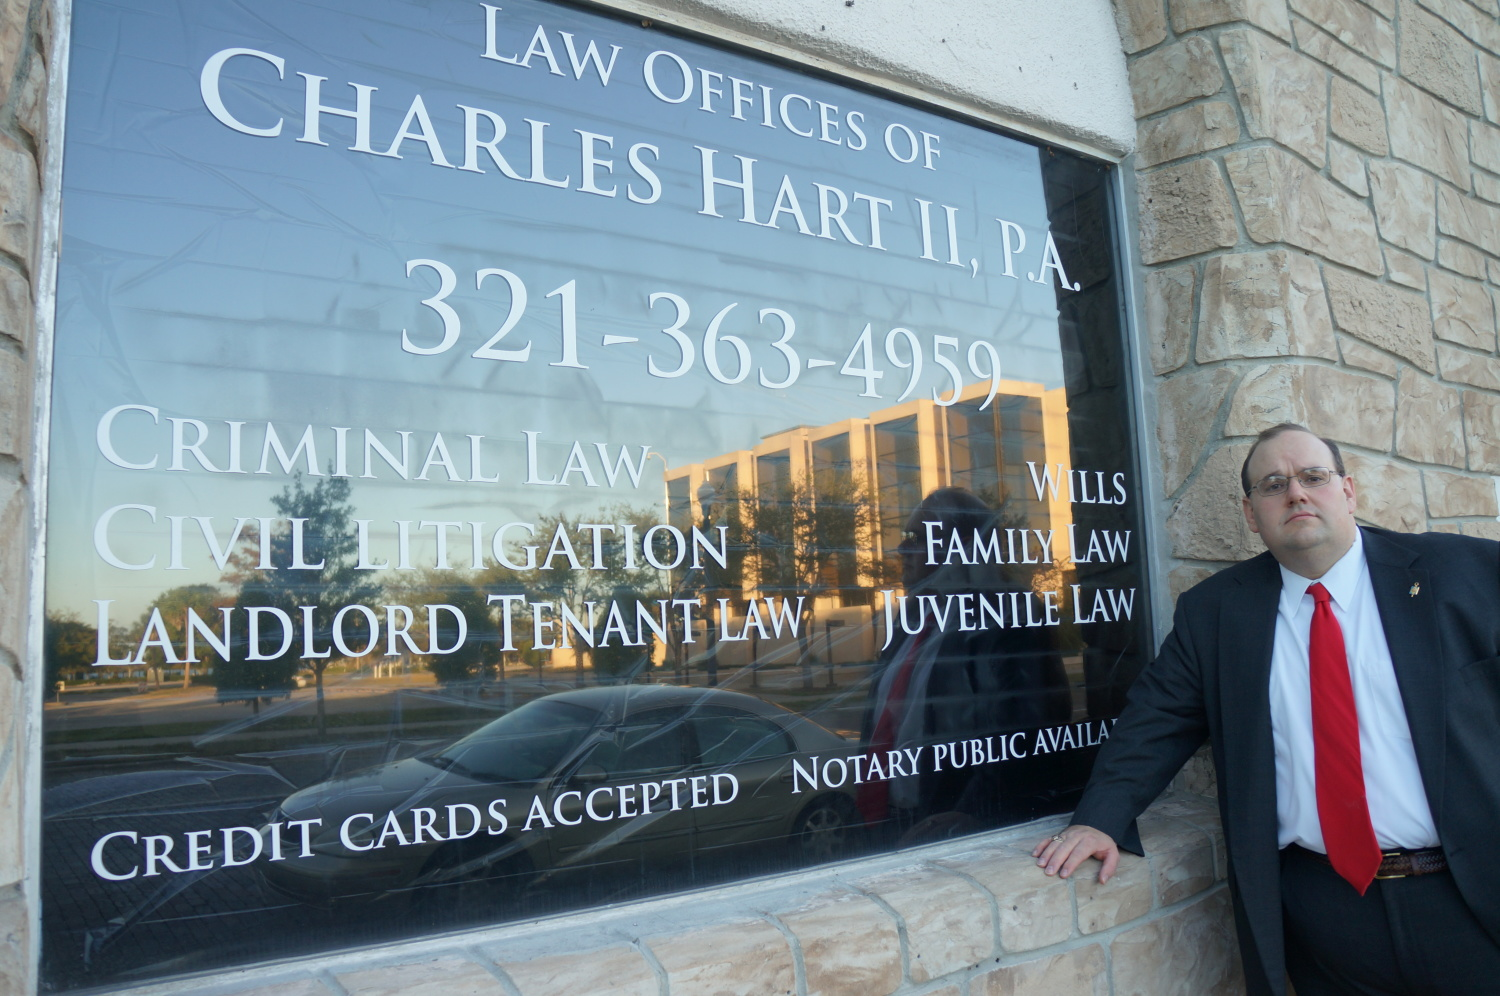 Home - Charles Hart Law